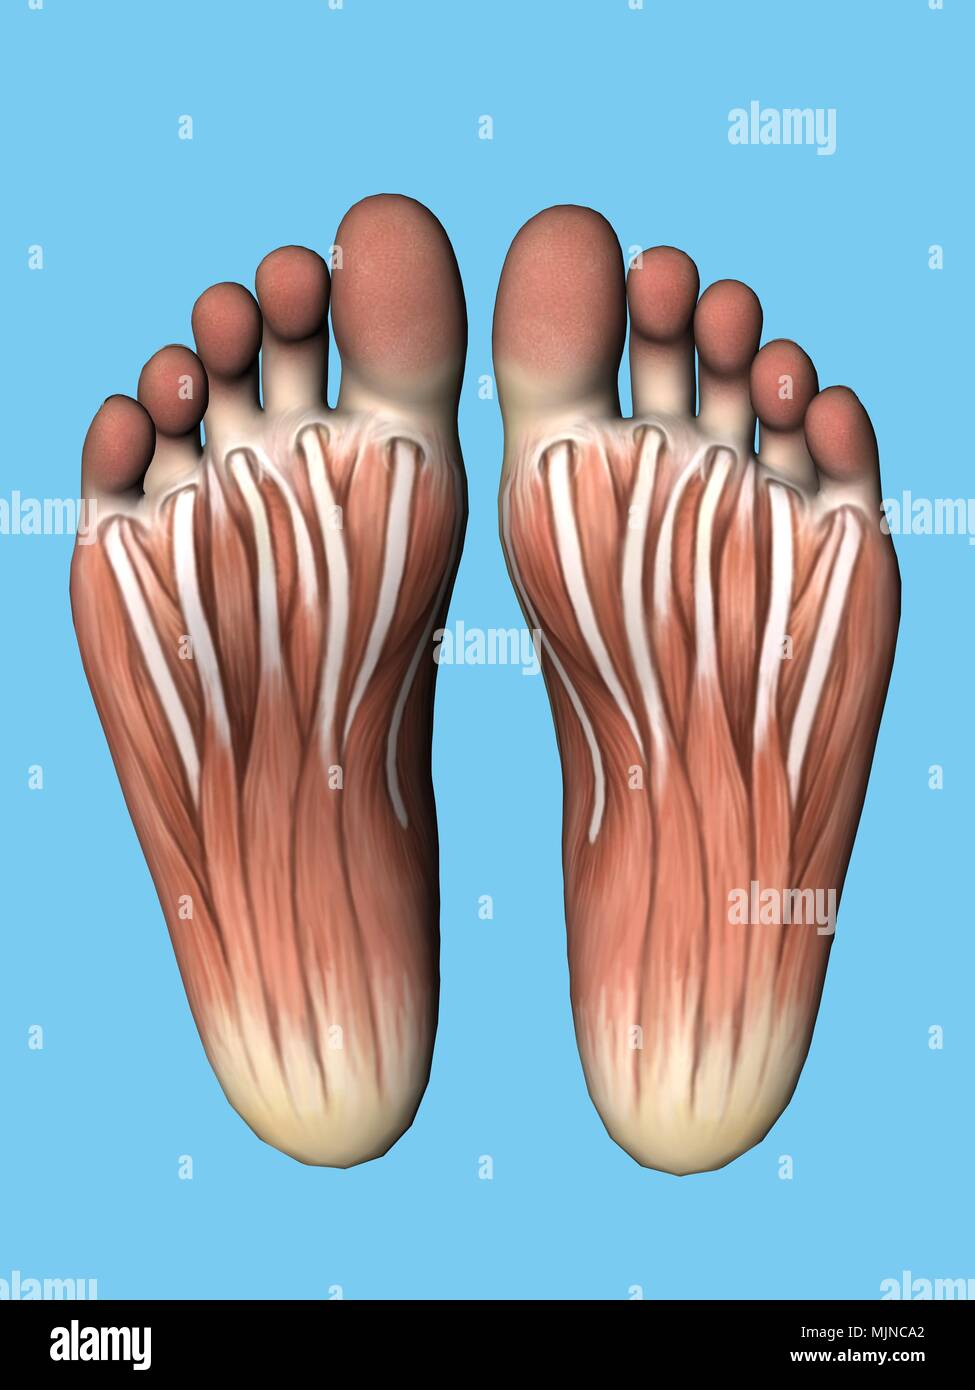 Anatomy bottom view of foot Stock Photo: 183638170 - Alamy